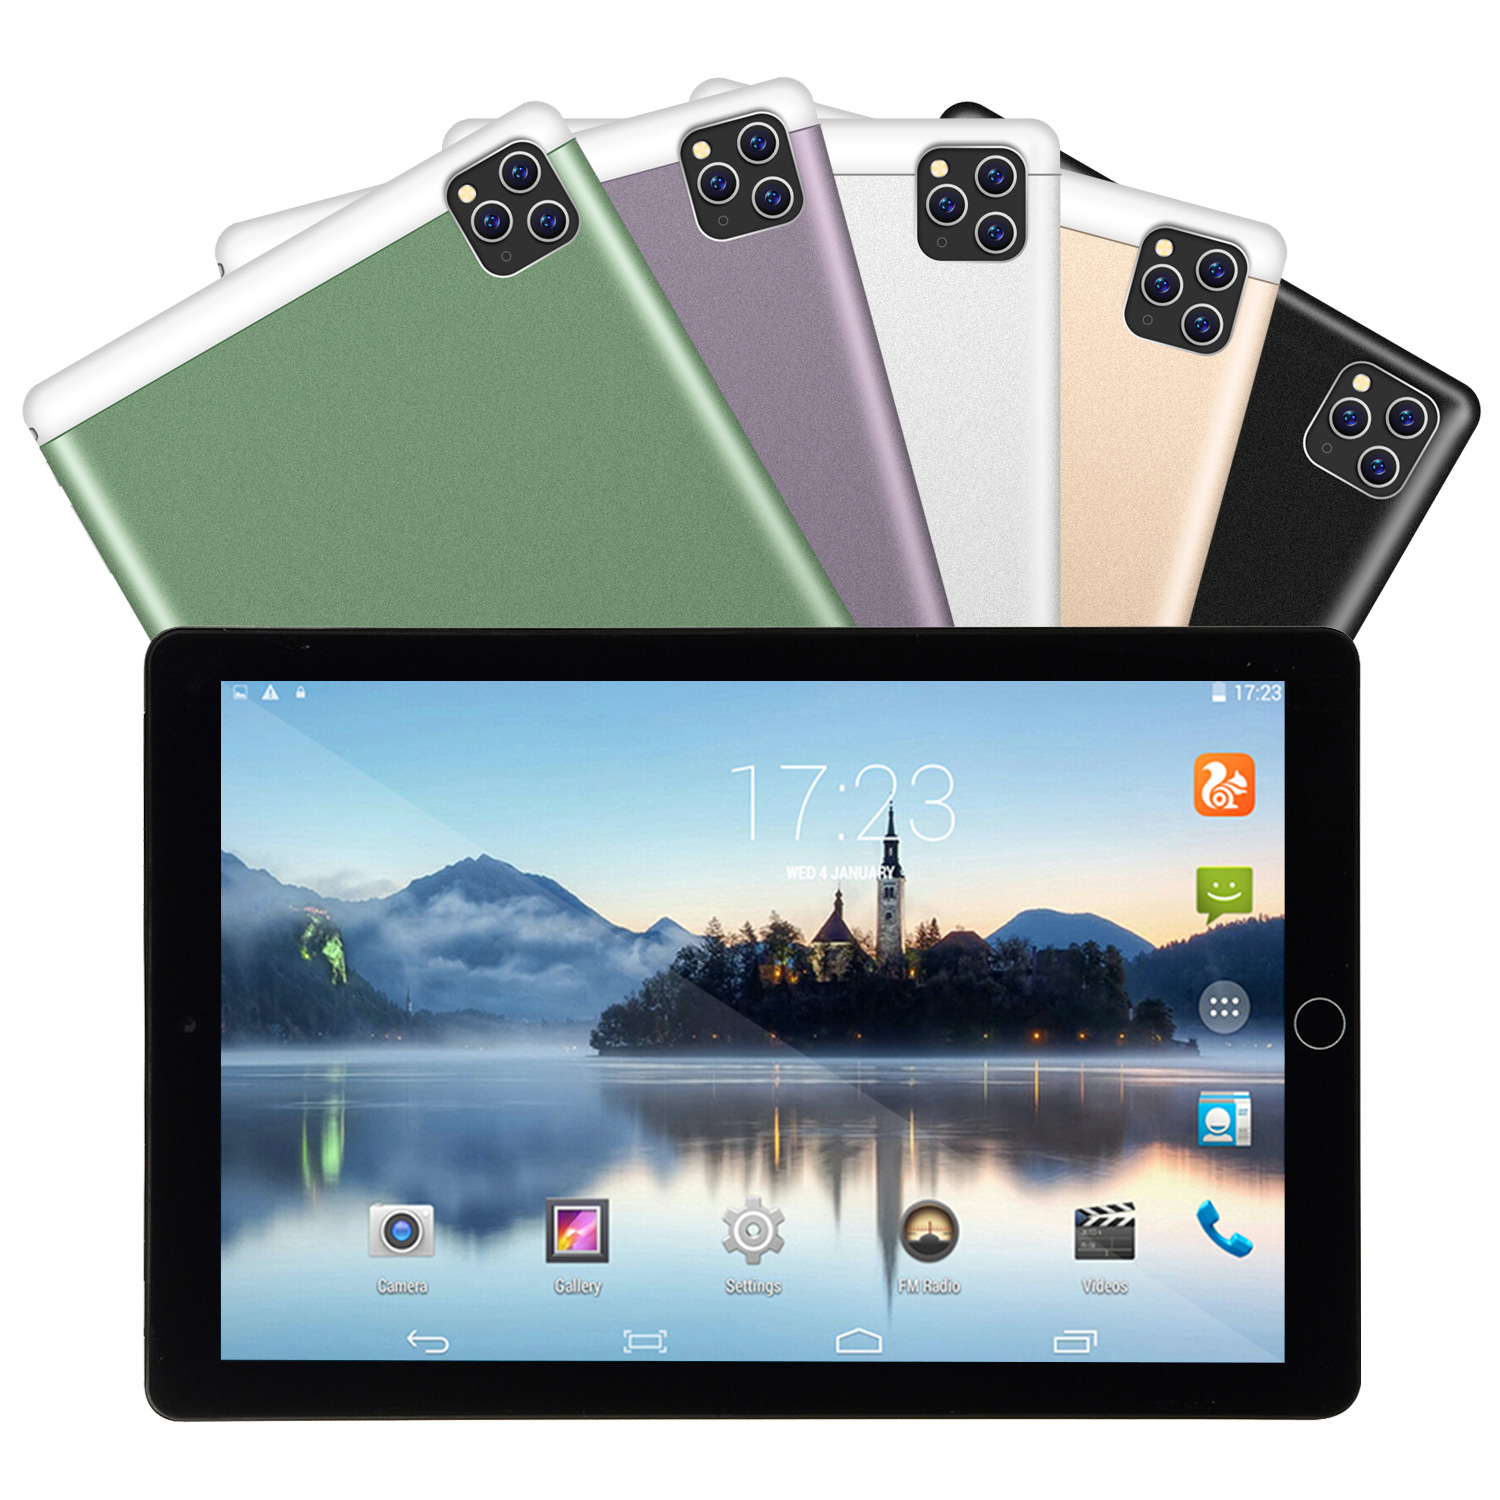 Newest 6G+128GB WiFi <font><b>Tablet</b></font> <font><b>PC</b></font> <font><b>10</b></font>.1 Inch <font><b>10</b></font> Core 4G Network <font><b>Android</b></font> 8.0 Screen Dual SIM 4G Call Phone <font><b>Tablet</b></font> Gift <font><b>Tablet</b></font> <font><b>PC</b></font> image